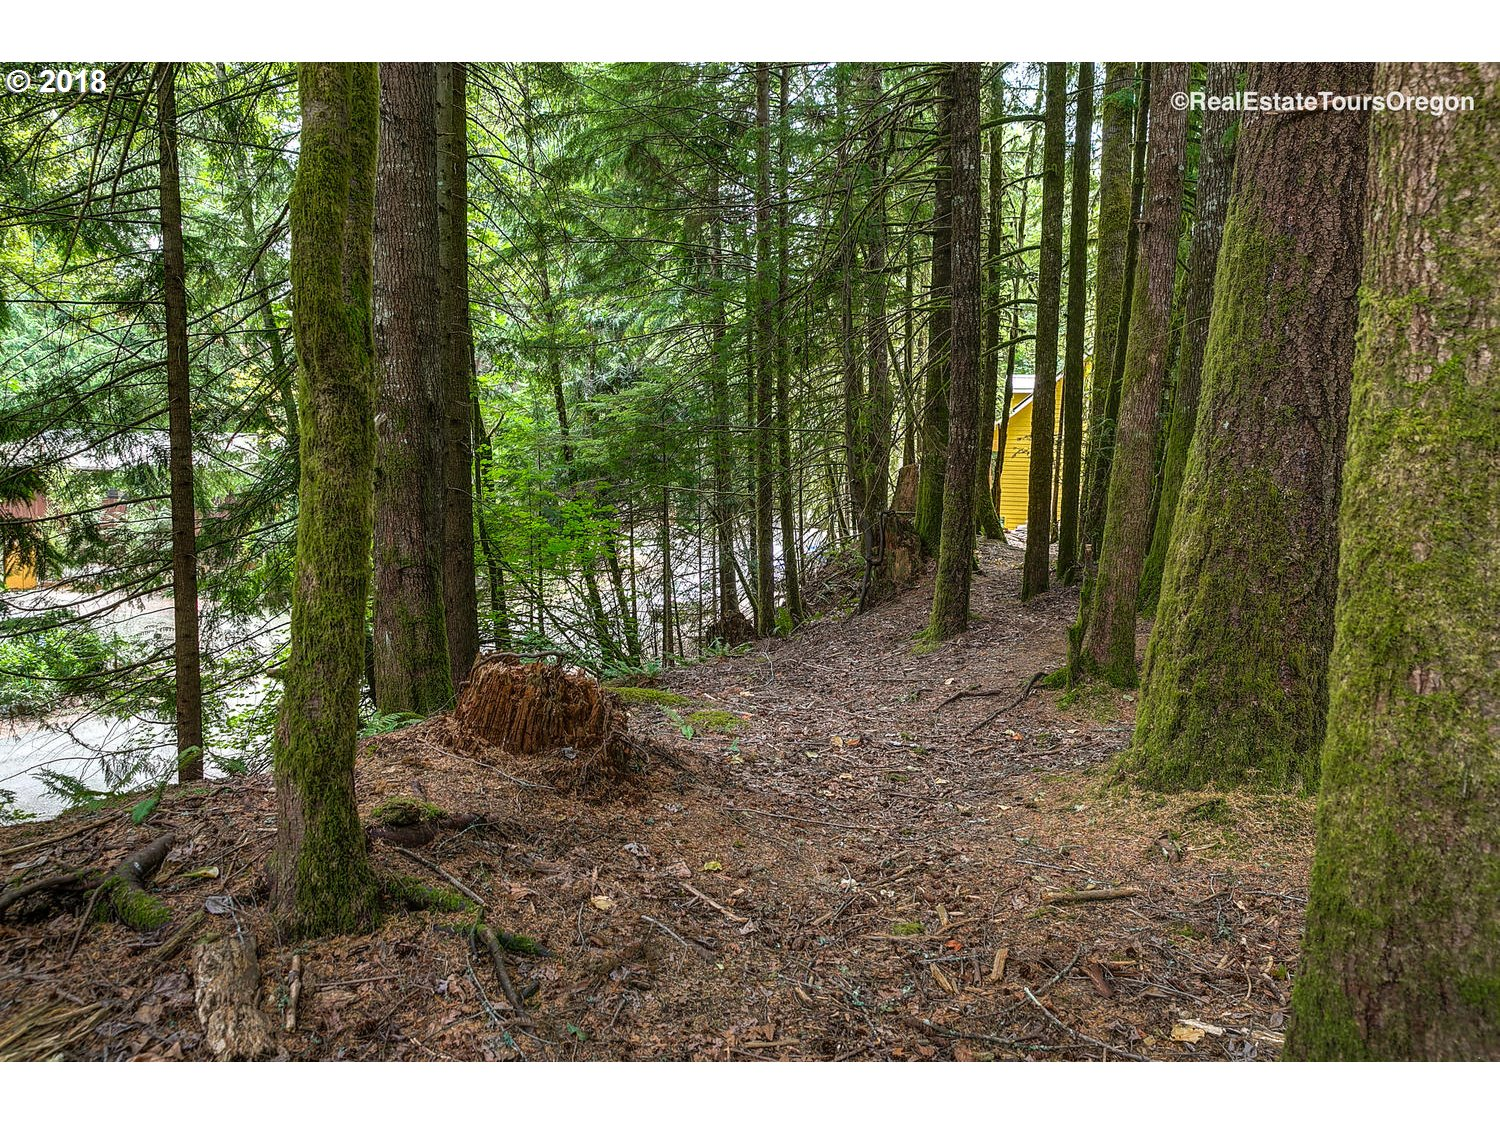 64684 E SANDY RIVER LN Unit 217 Rhododendron, OR 97049 - MLS #: 18666525